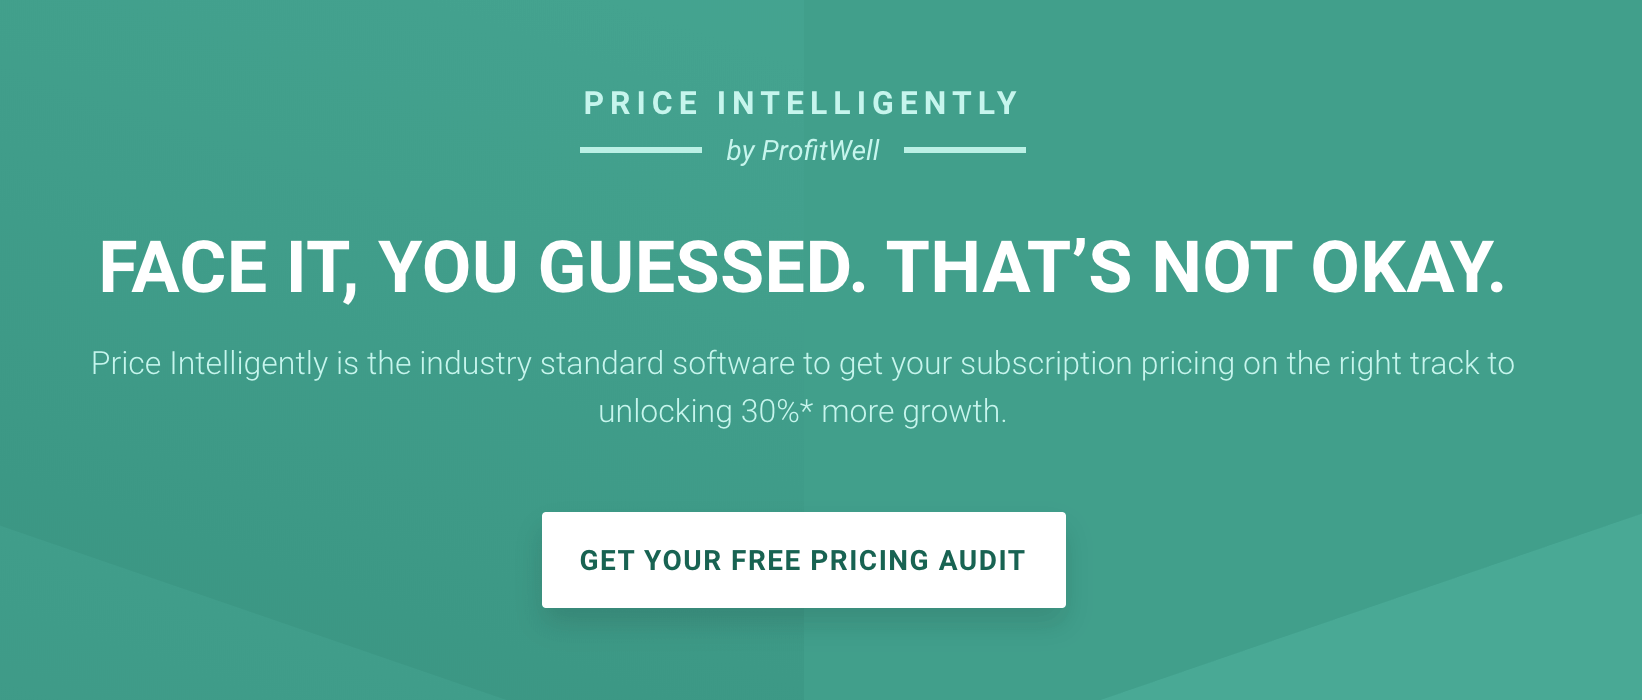 Price intelligently website copywriting